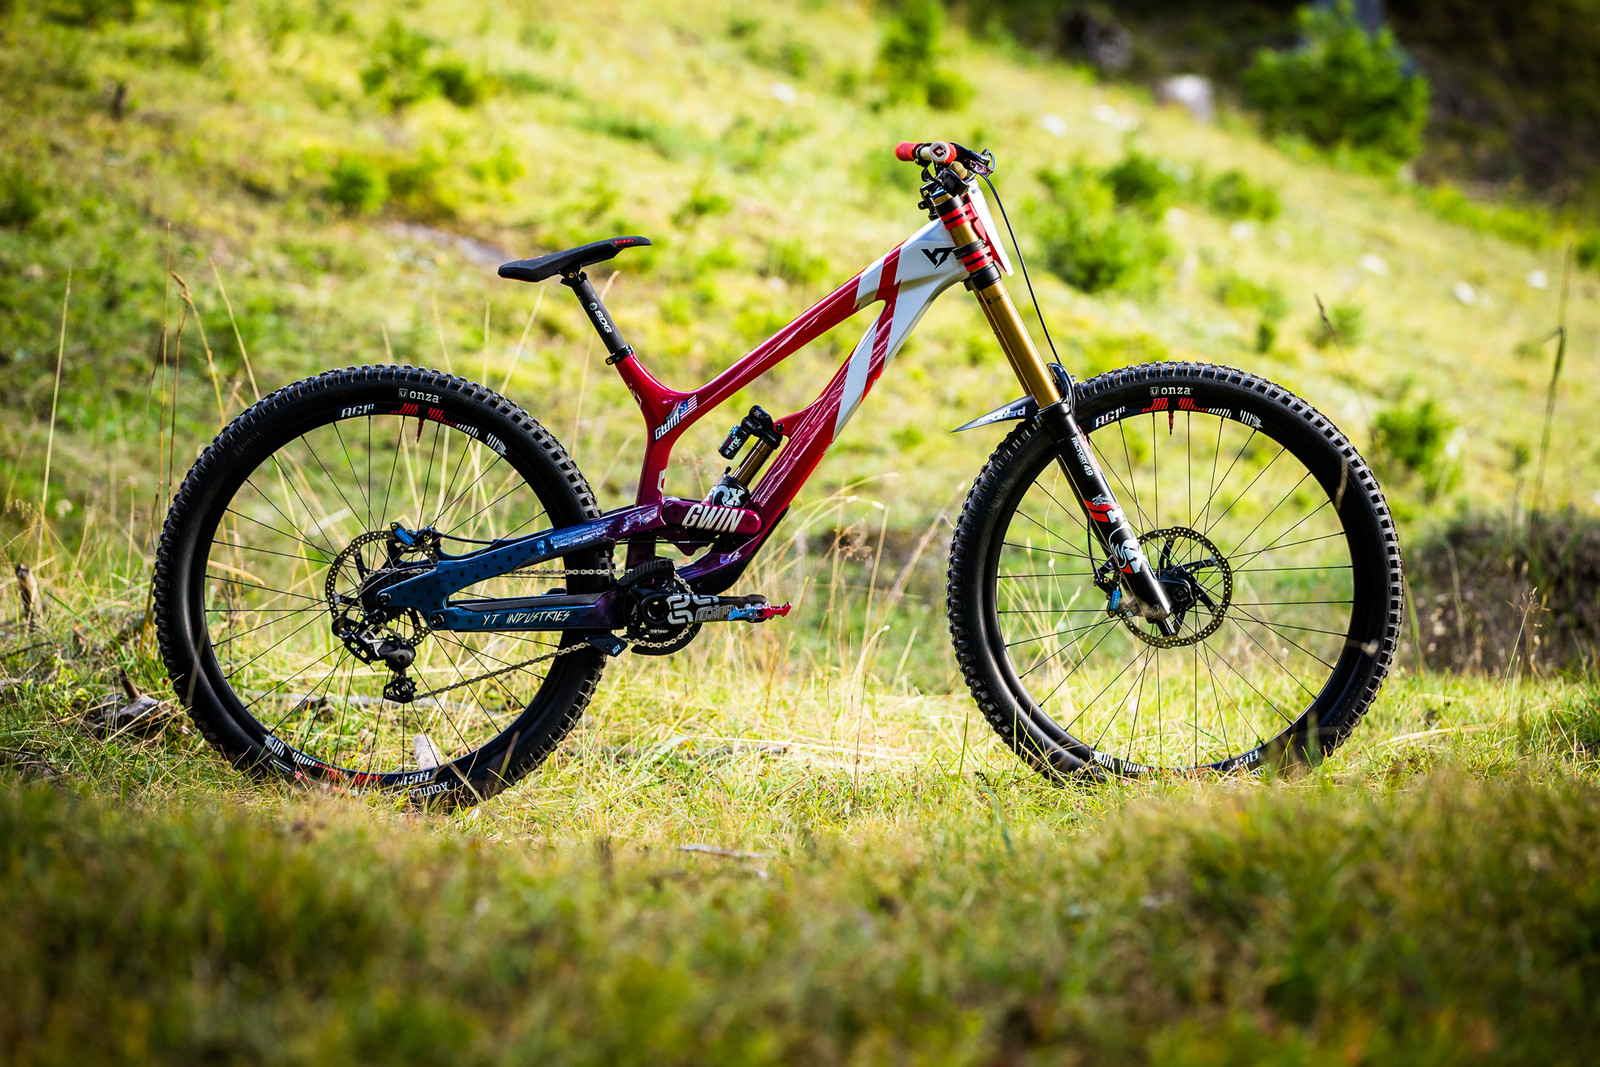 Aaron Gwin's Big Wheeled YT TUES World Champs Bike - WORLD CHAMPS BIKE - Aaron Gwin's YT TUES - Mountain Biking Pictures - Vital MTB